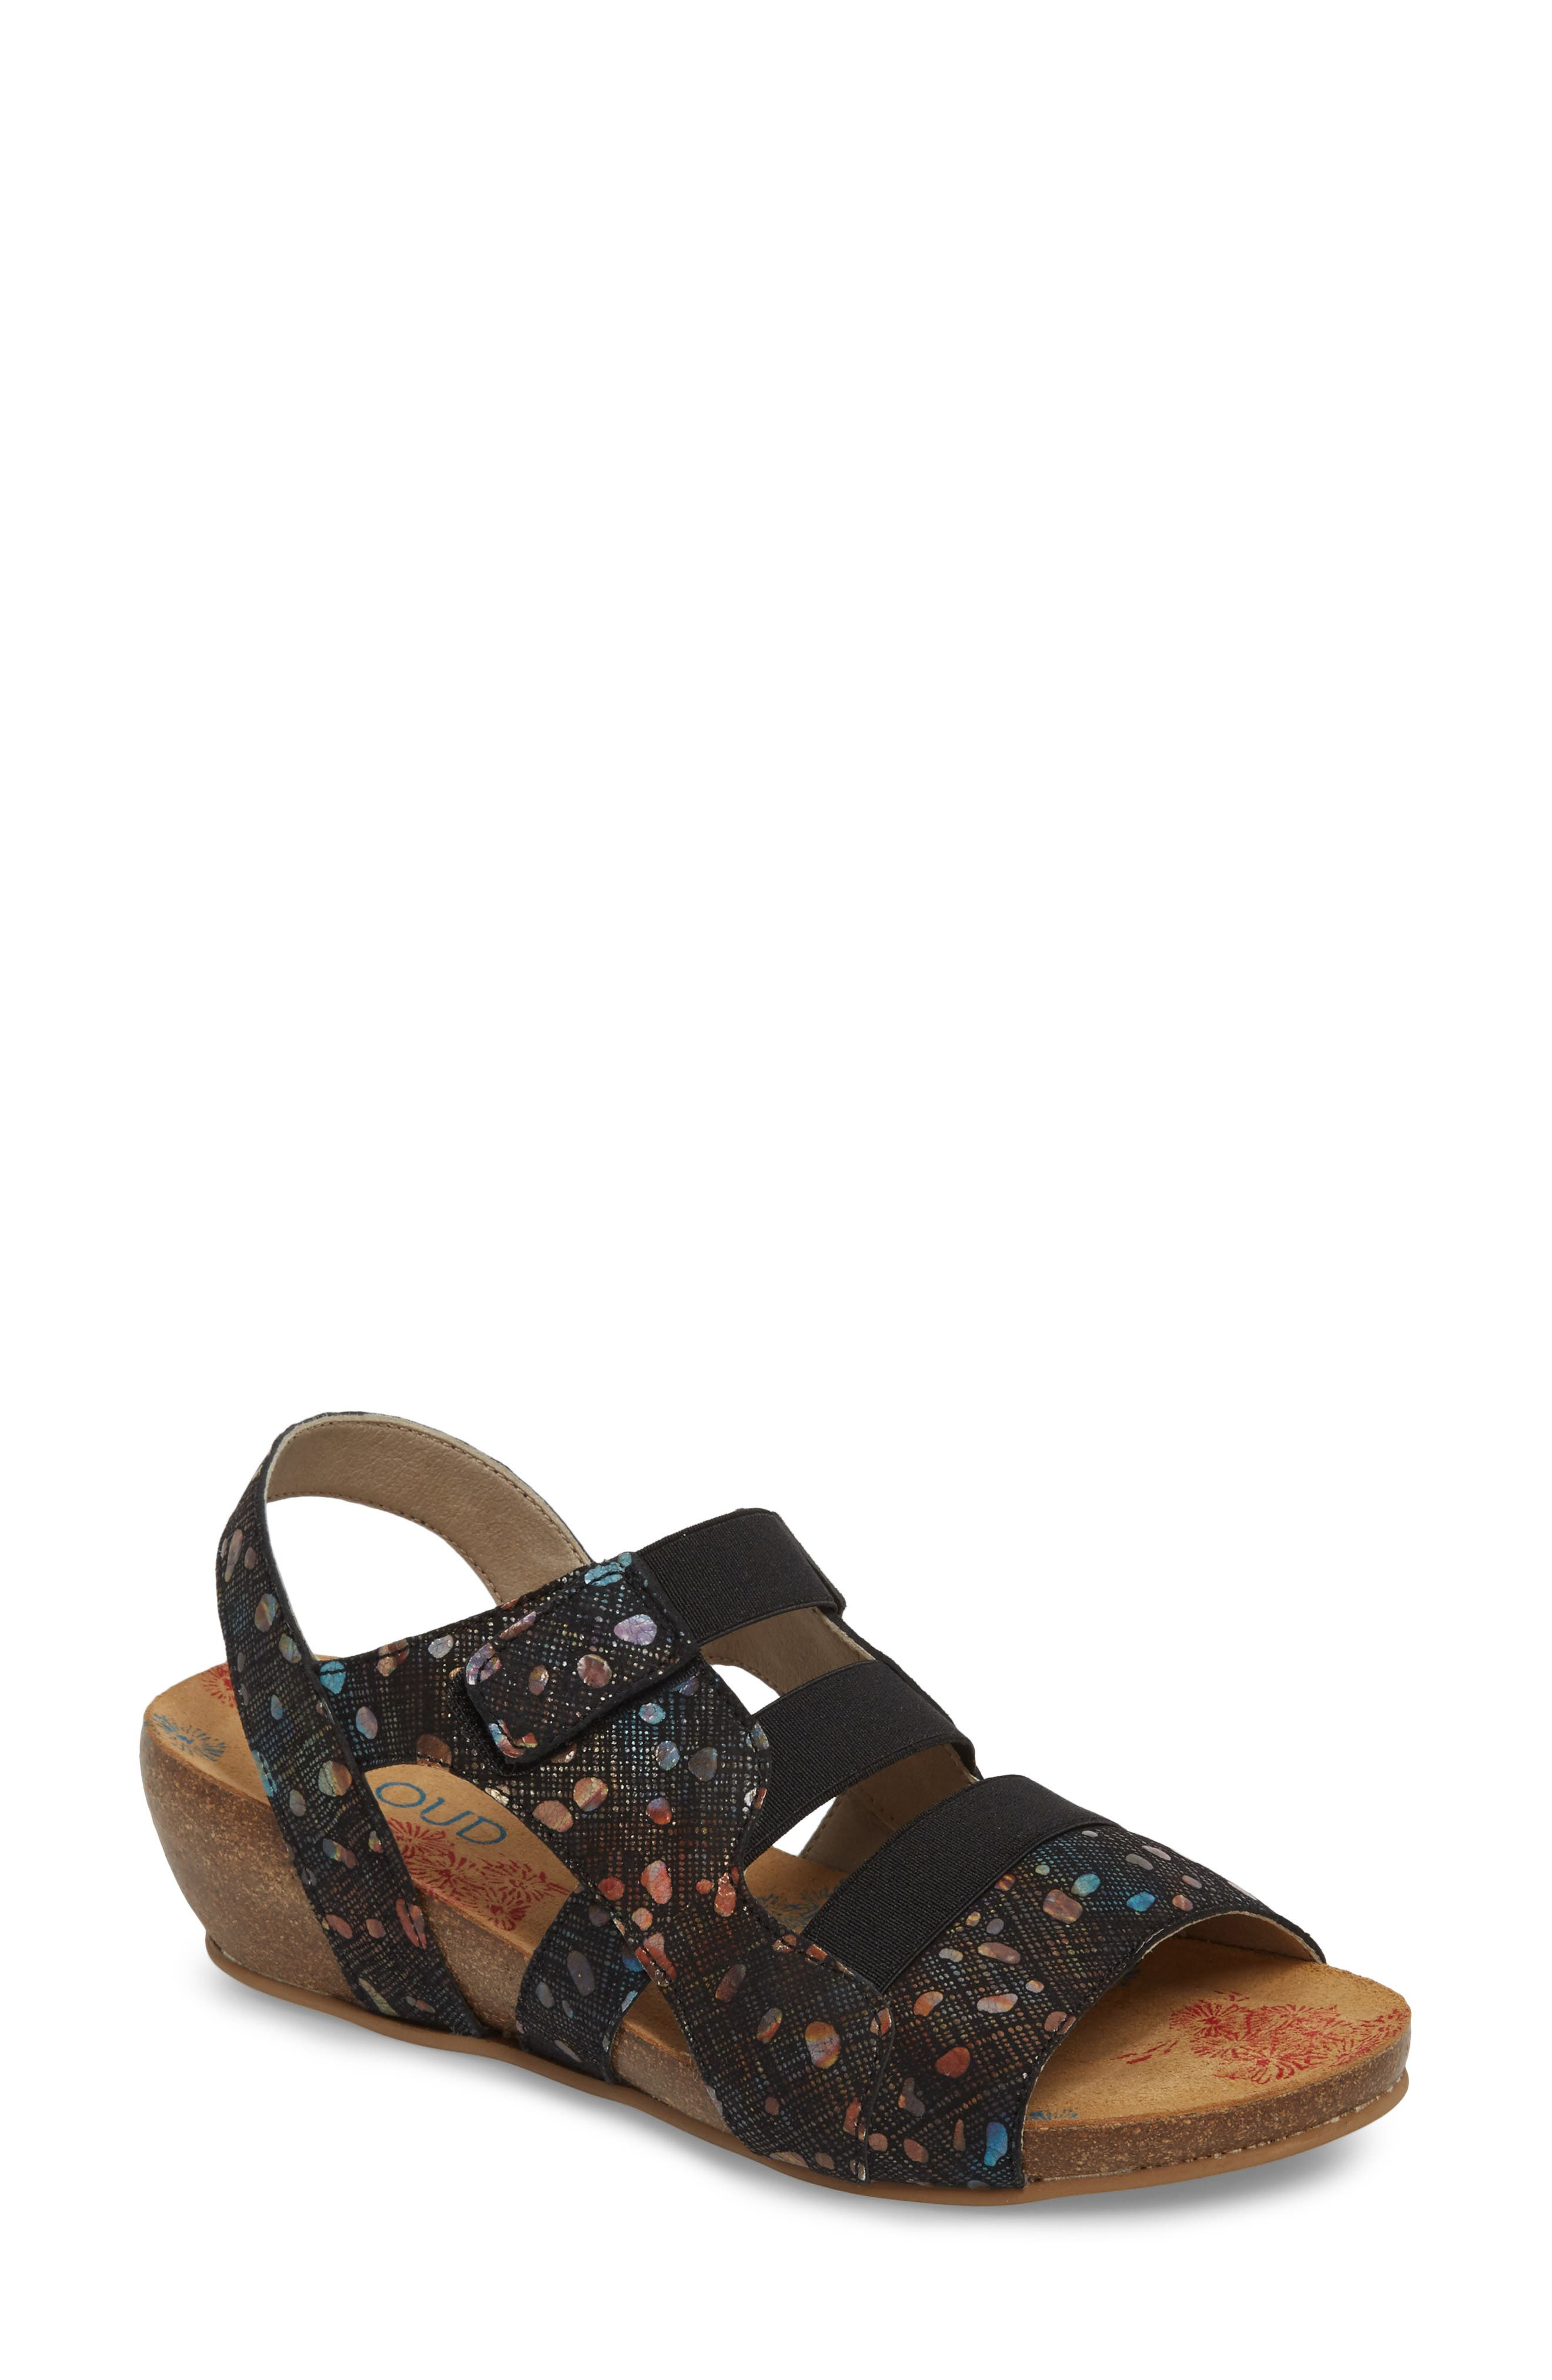 Duffy Wedge Sandal,                             Main thumbnail 1, color,                             BUBBLE LEATHER